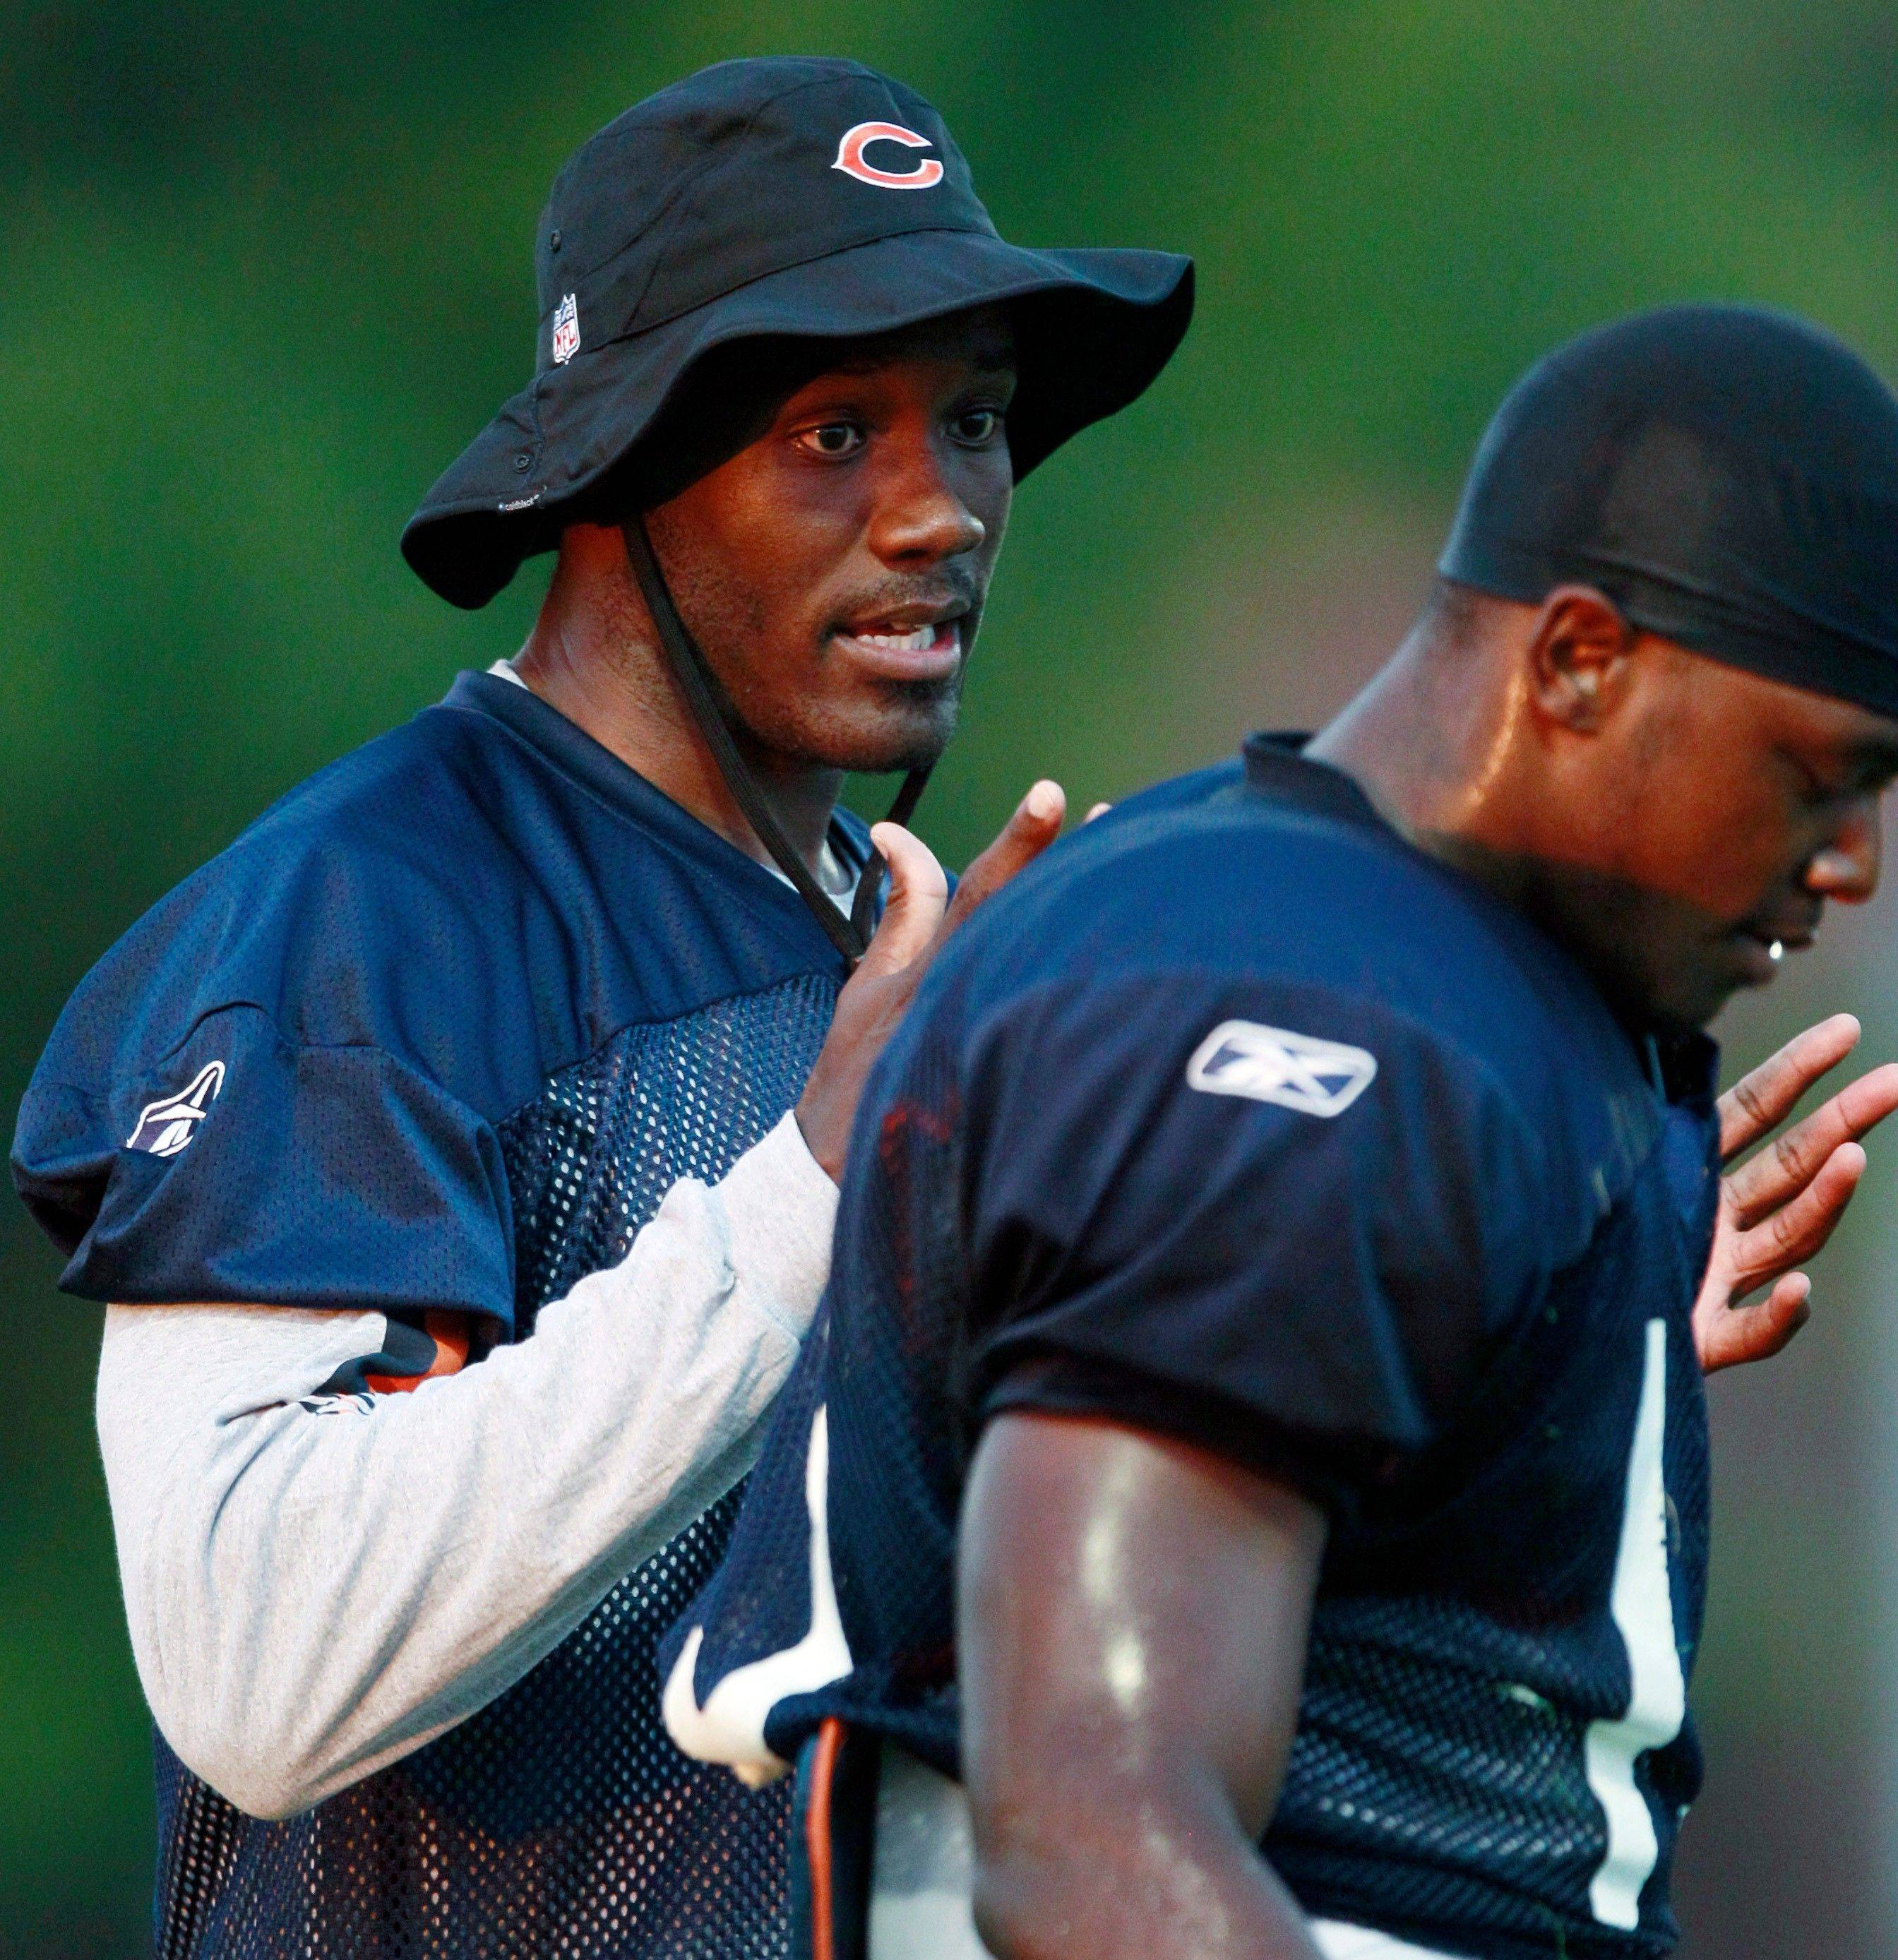 Bears wide receiver Roy Williams, left, talks to wide receiver Jimmy Young during NFL football training camp Monday, Aug. 1, 2011, at Olivet Nazarene University in Bourbonnais, Ill.